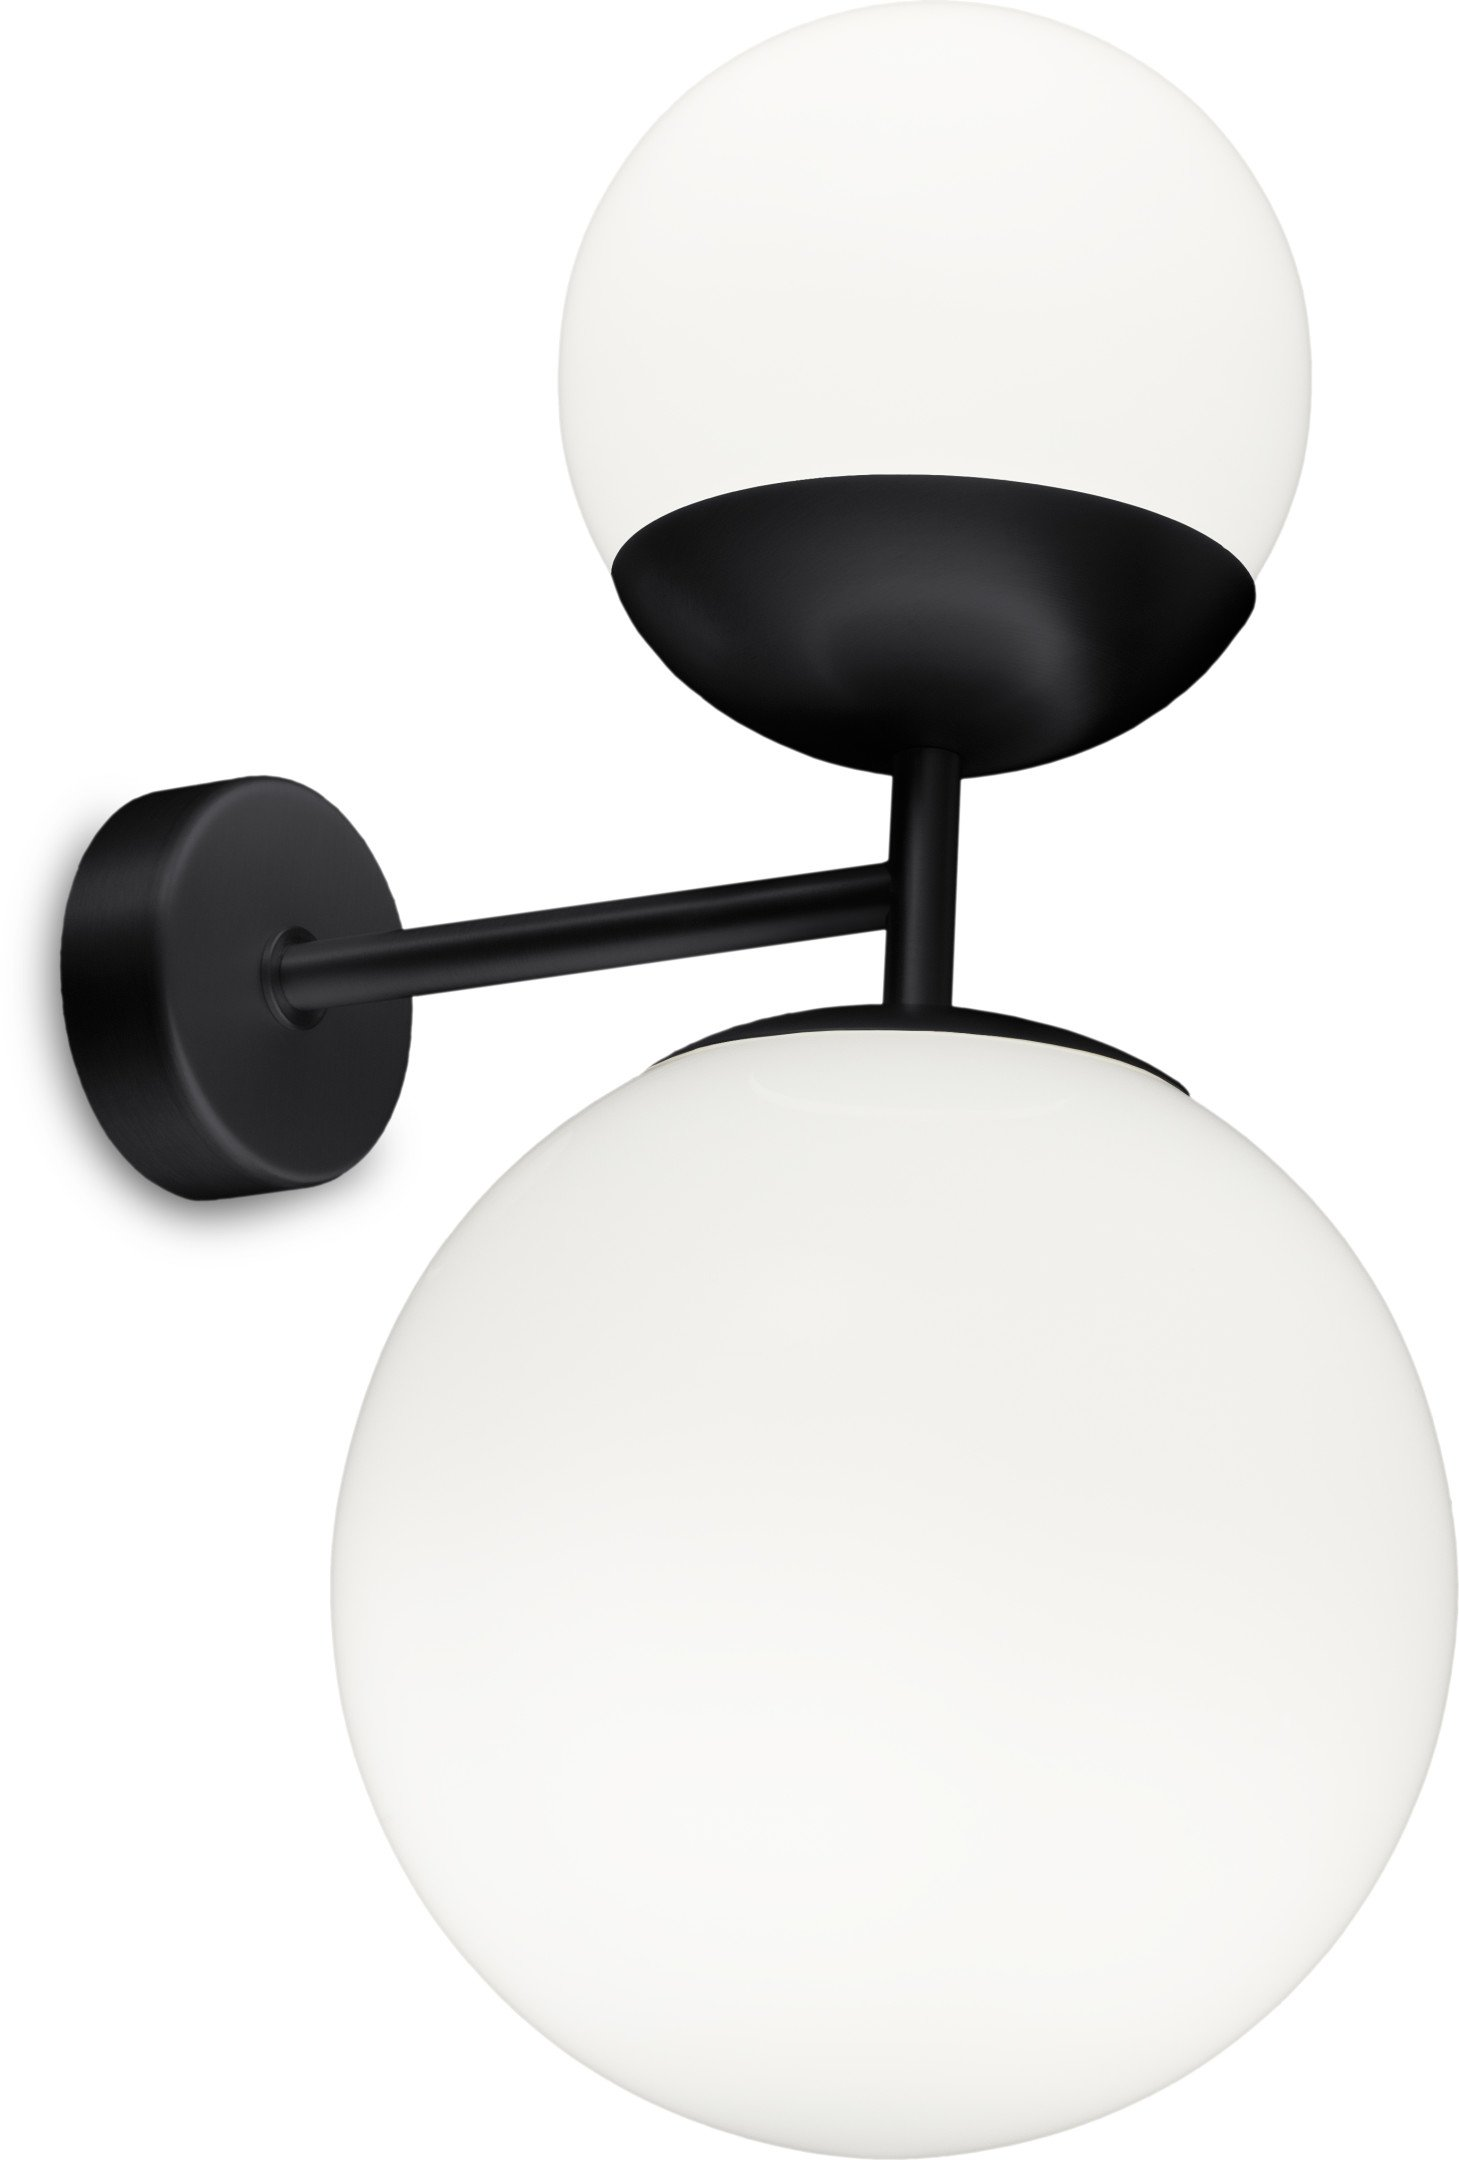 Black Biba Wall Lamp by L. Bozzoli for Tato Italia